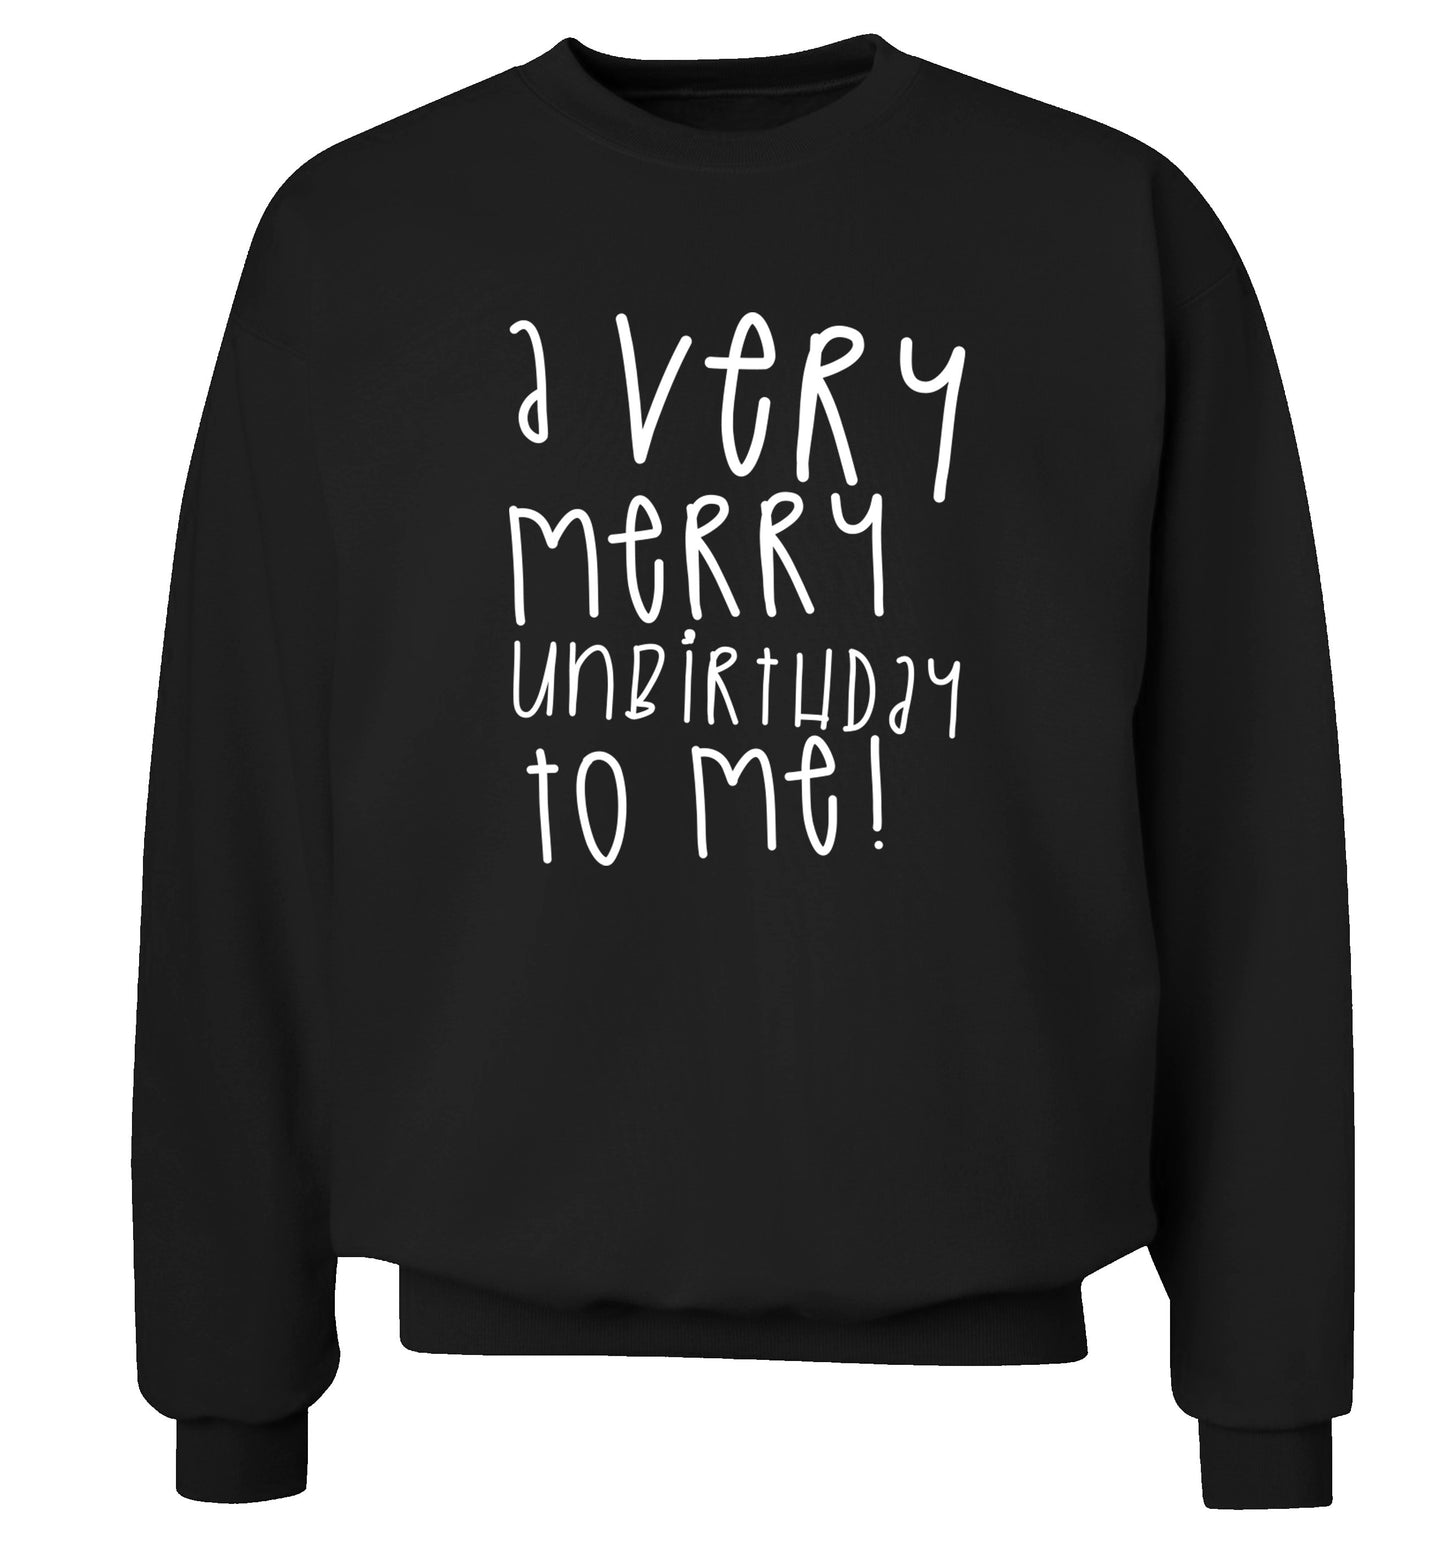 A very merry unbirthday to me! Adult's unisex black Sweater 2XL